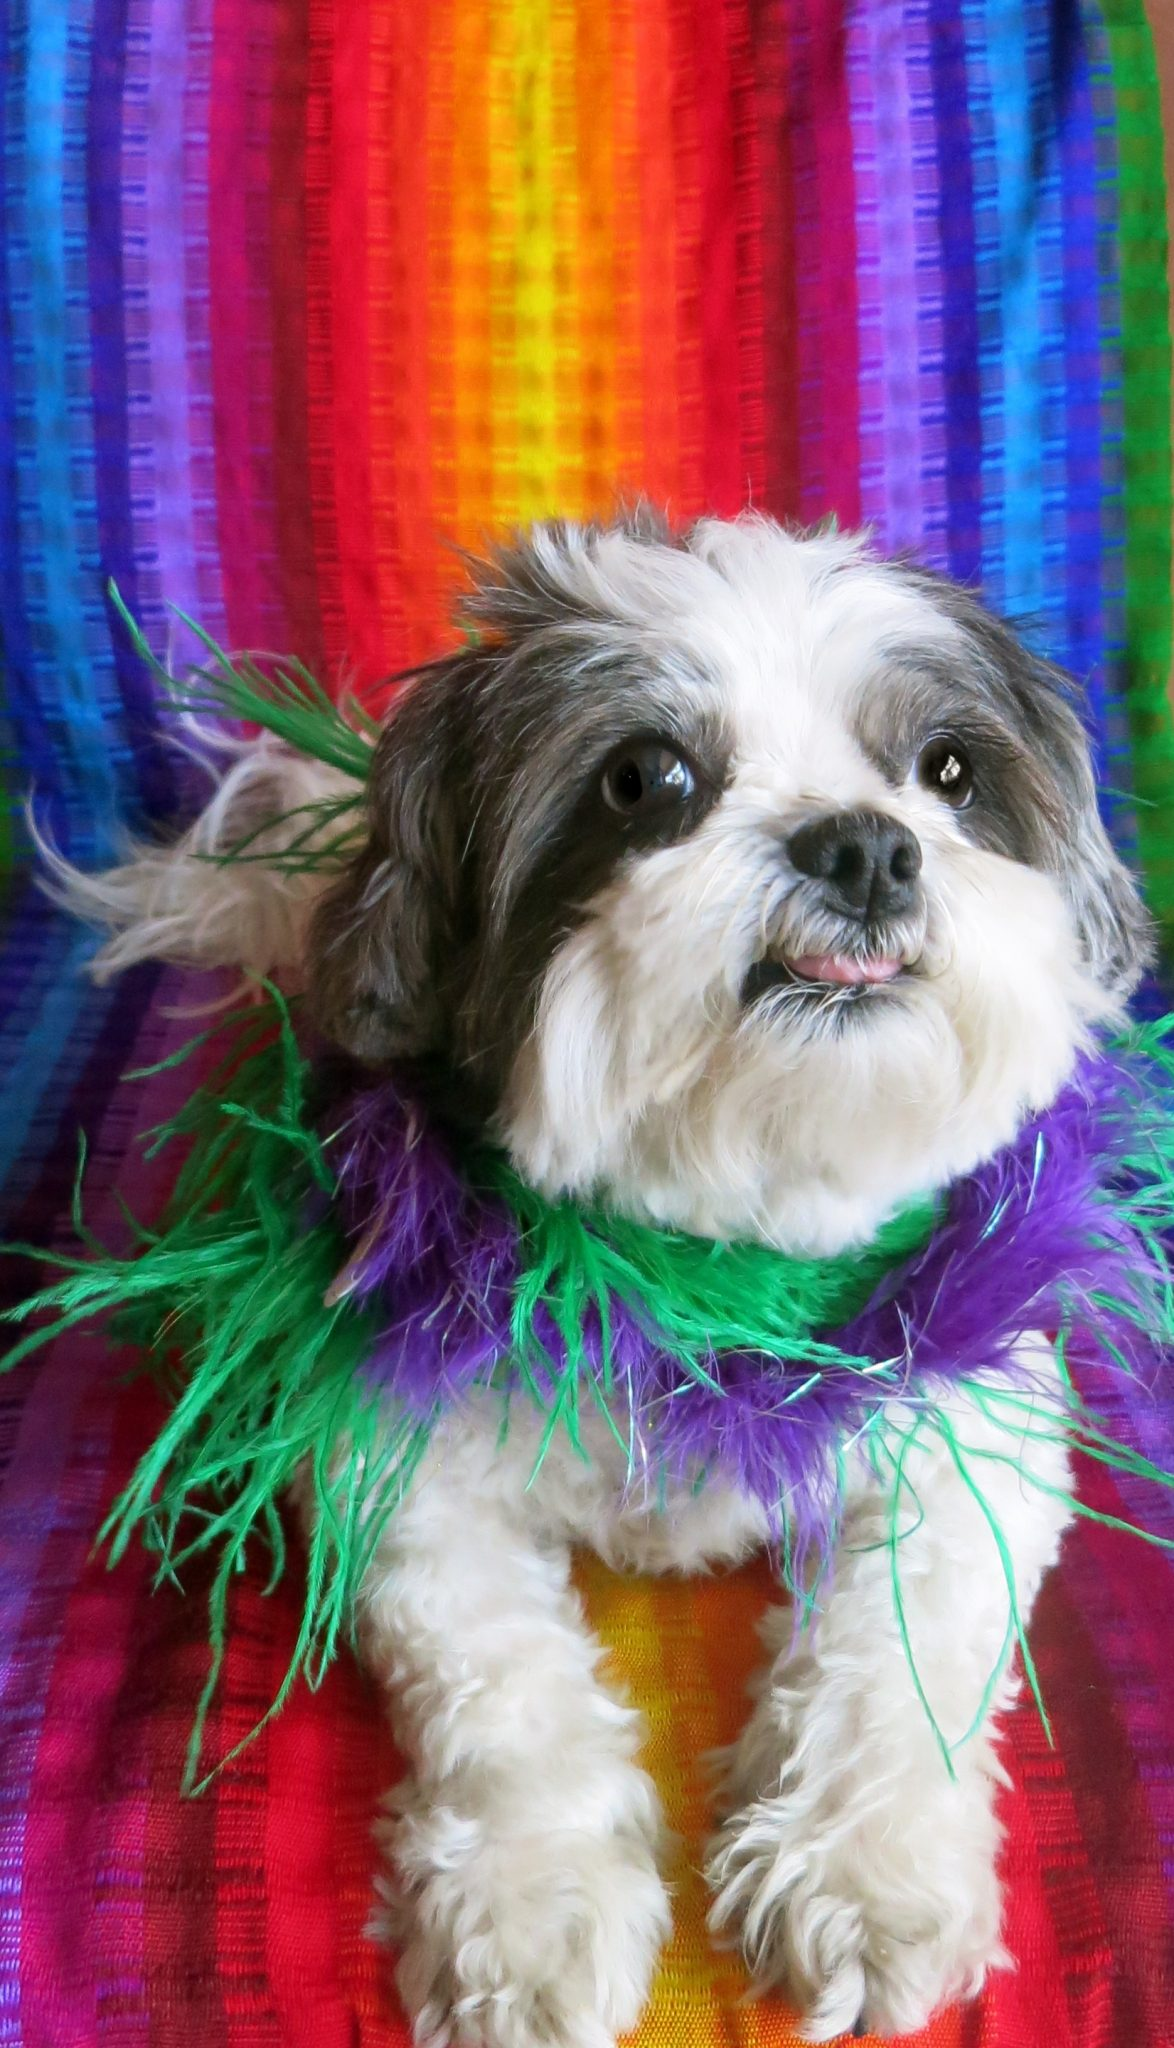 HAPPY GAY PRIDE! Dogs Love Unconditionally!  Dogs Don't Discriminate!